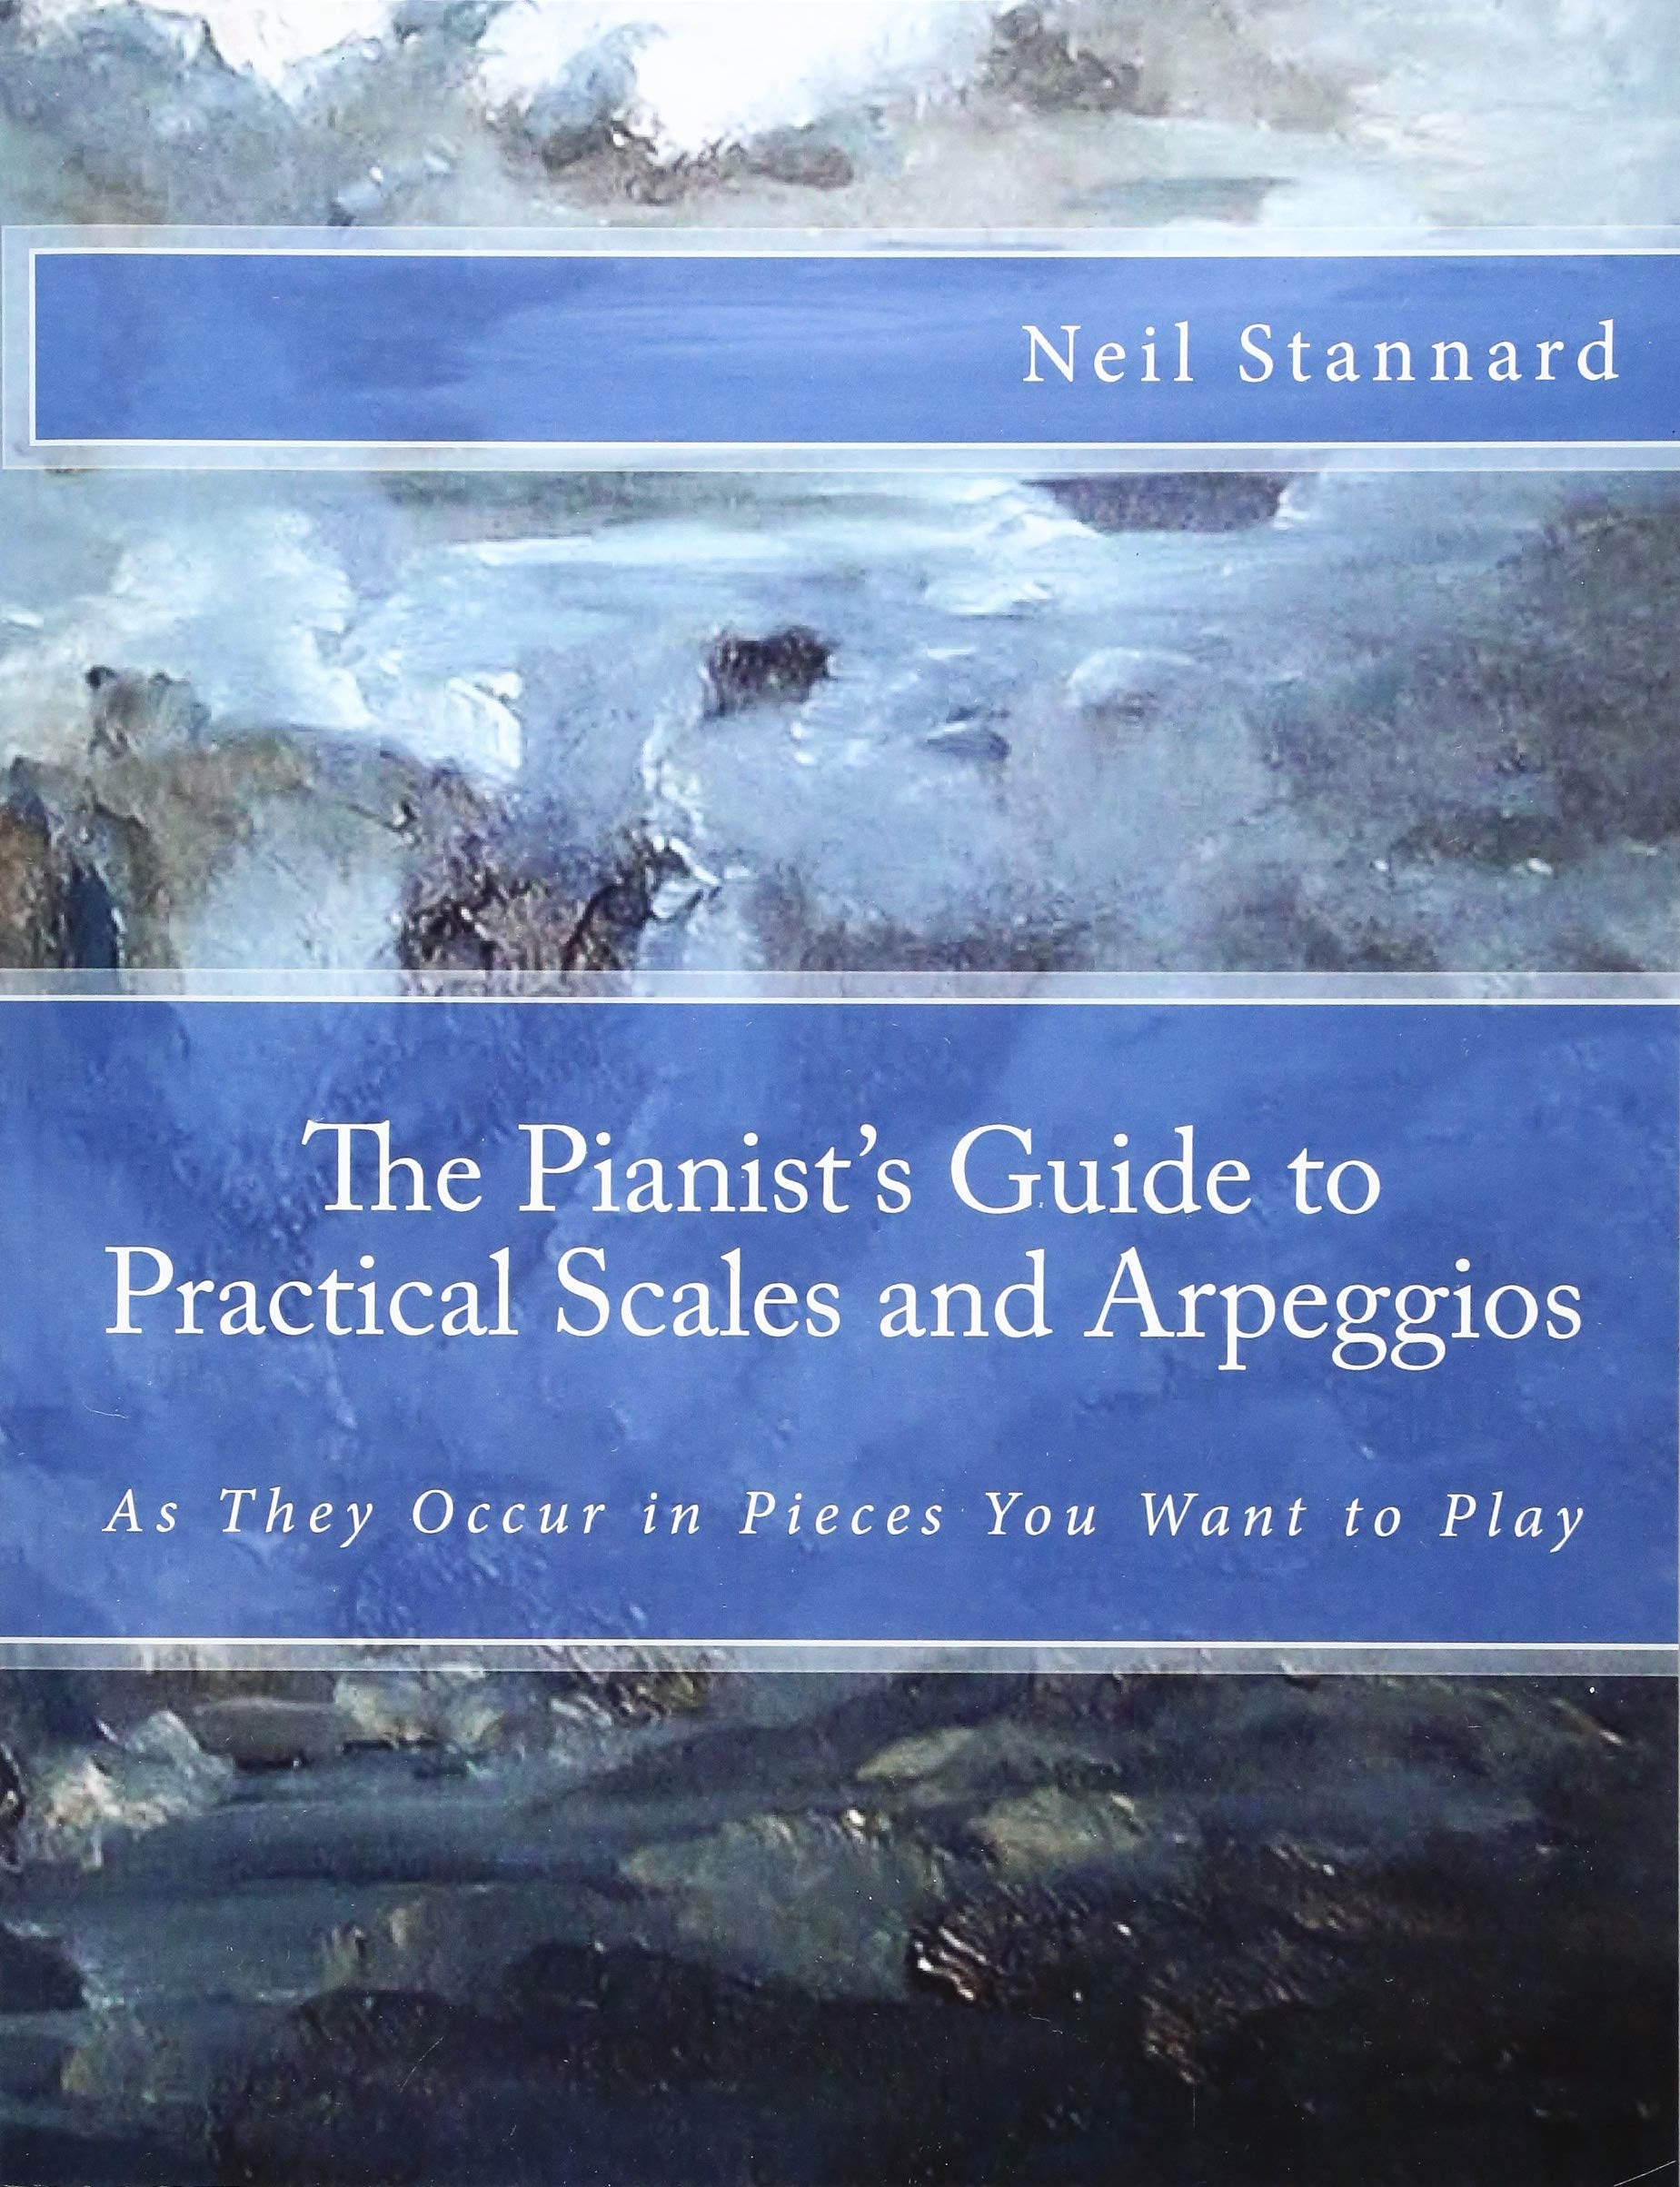 The Pianist's Guide to Practical Scales and Arpeggios: As